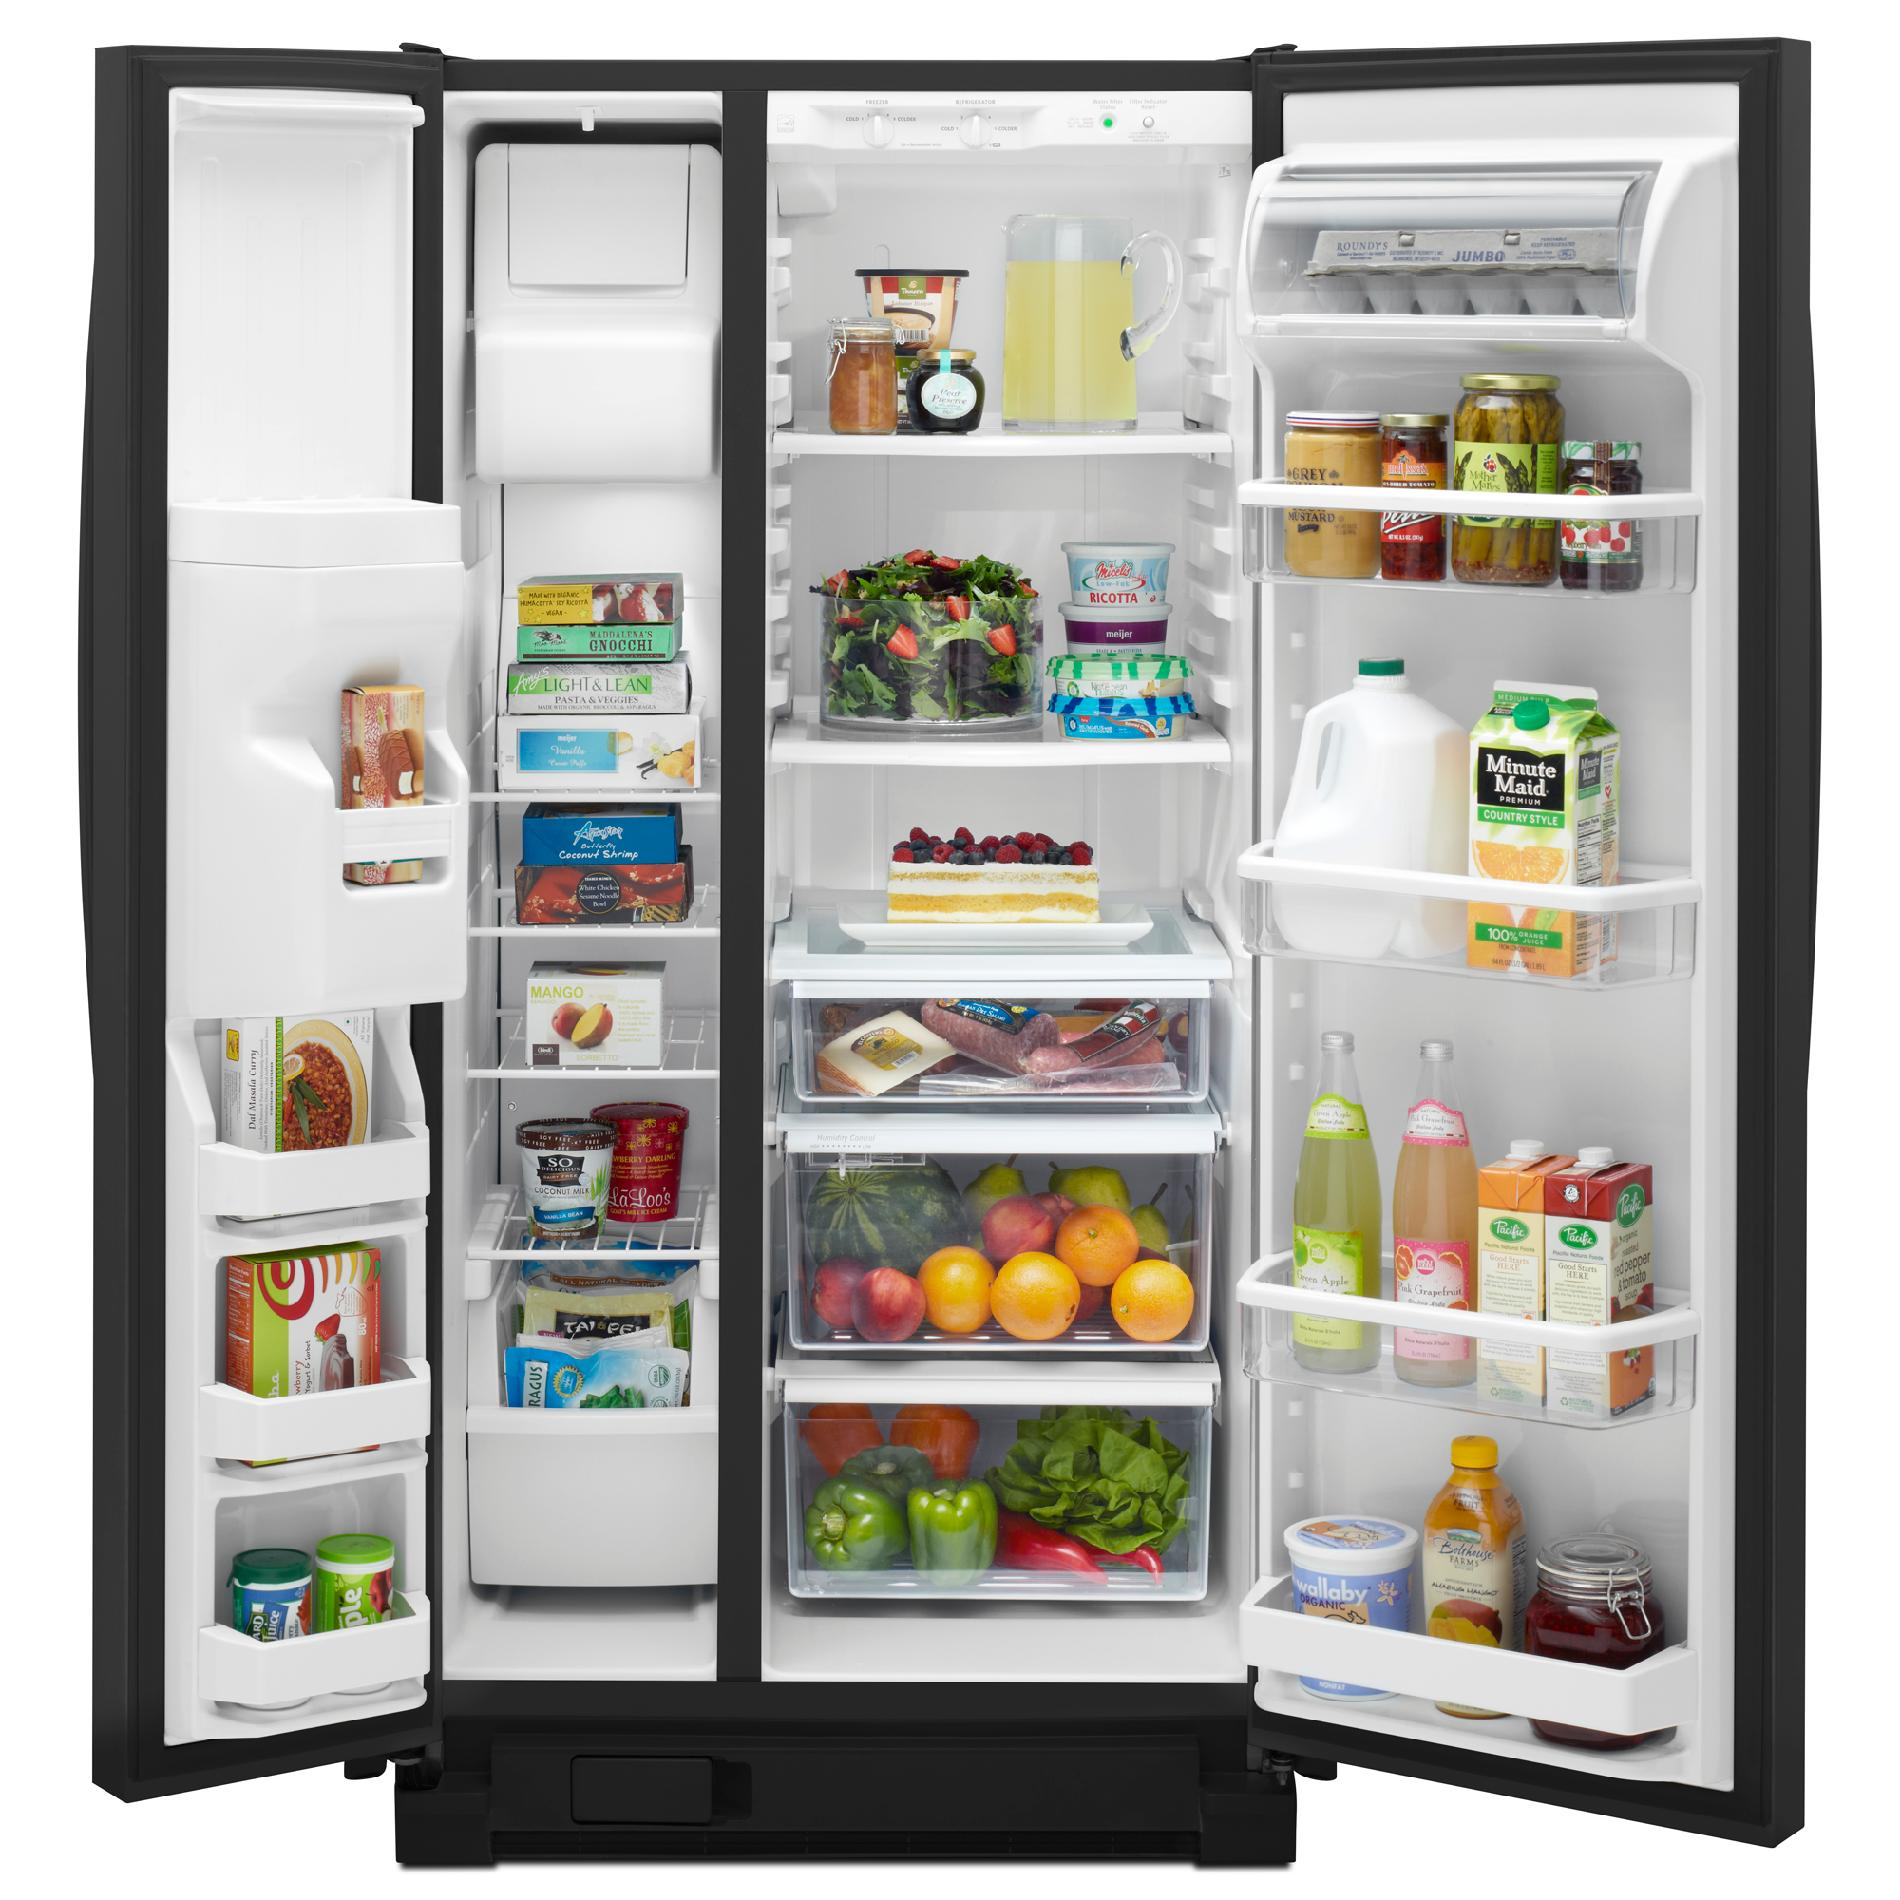 Maytag 22 cu. ft. Side-by-Side Refrigerator w/ Ice & Water Dispenser - Black